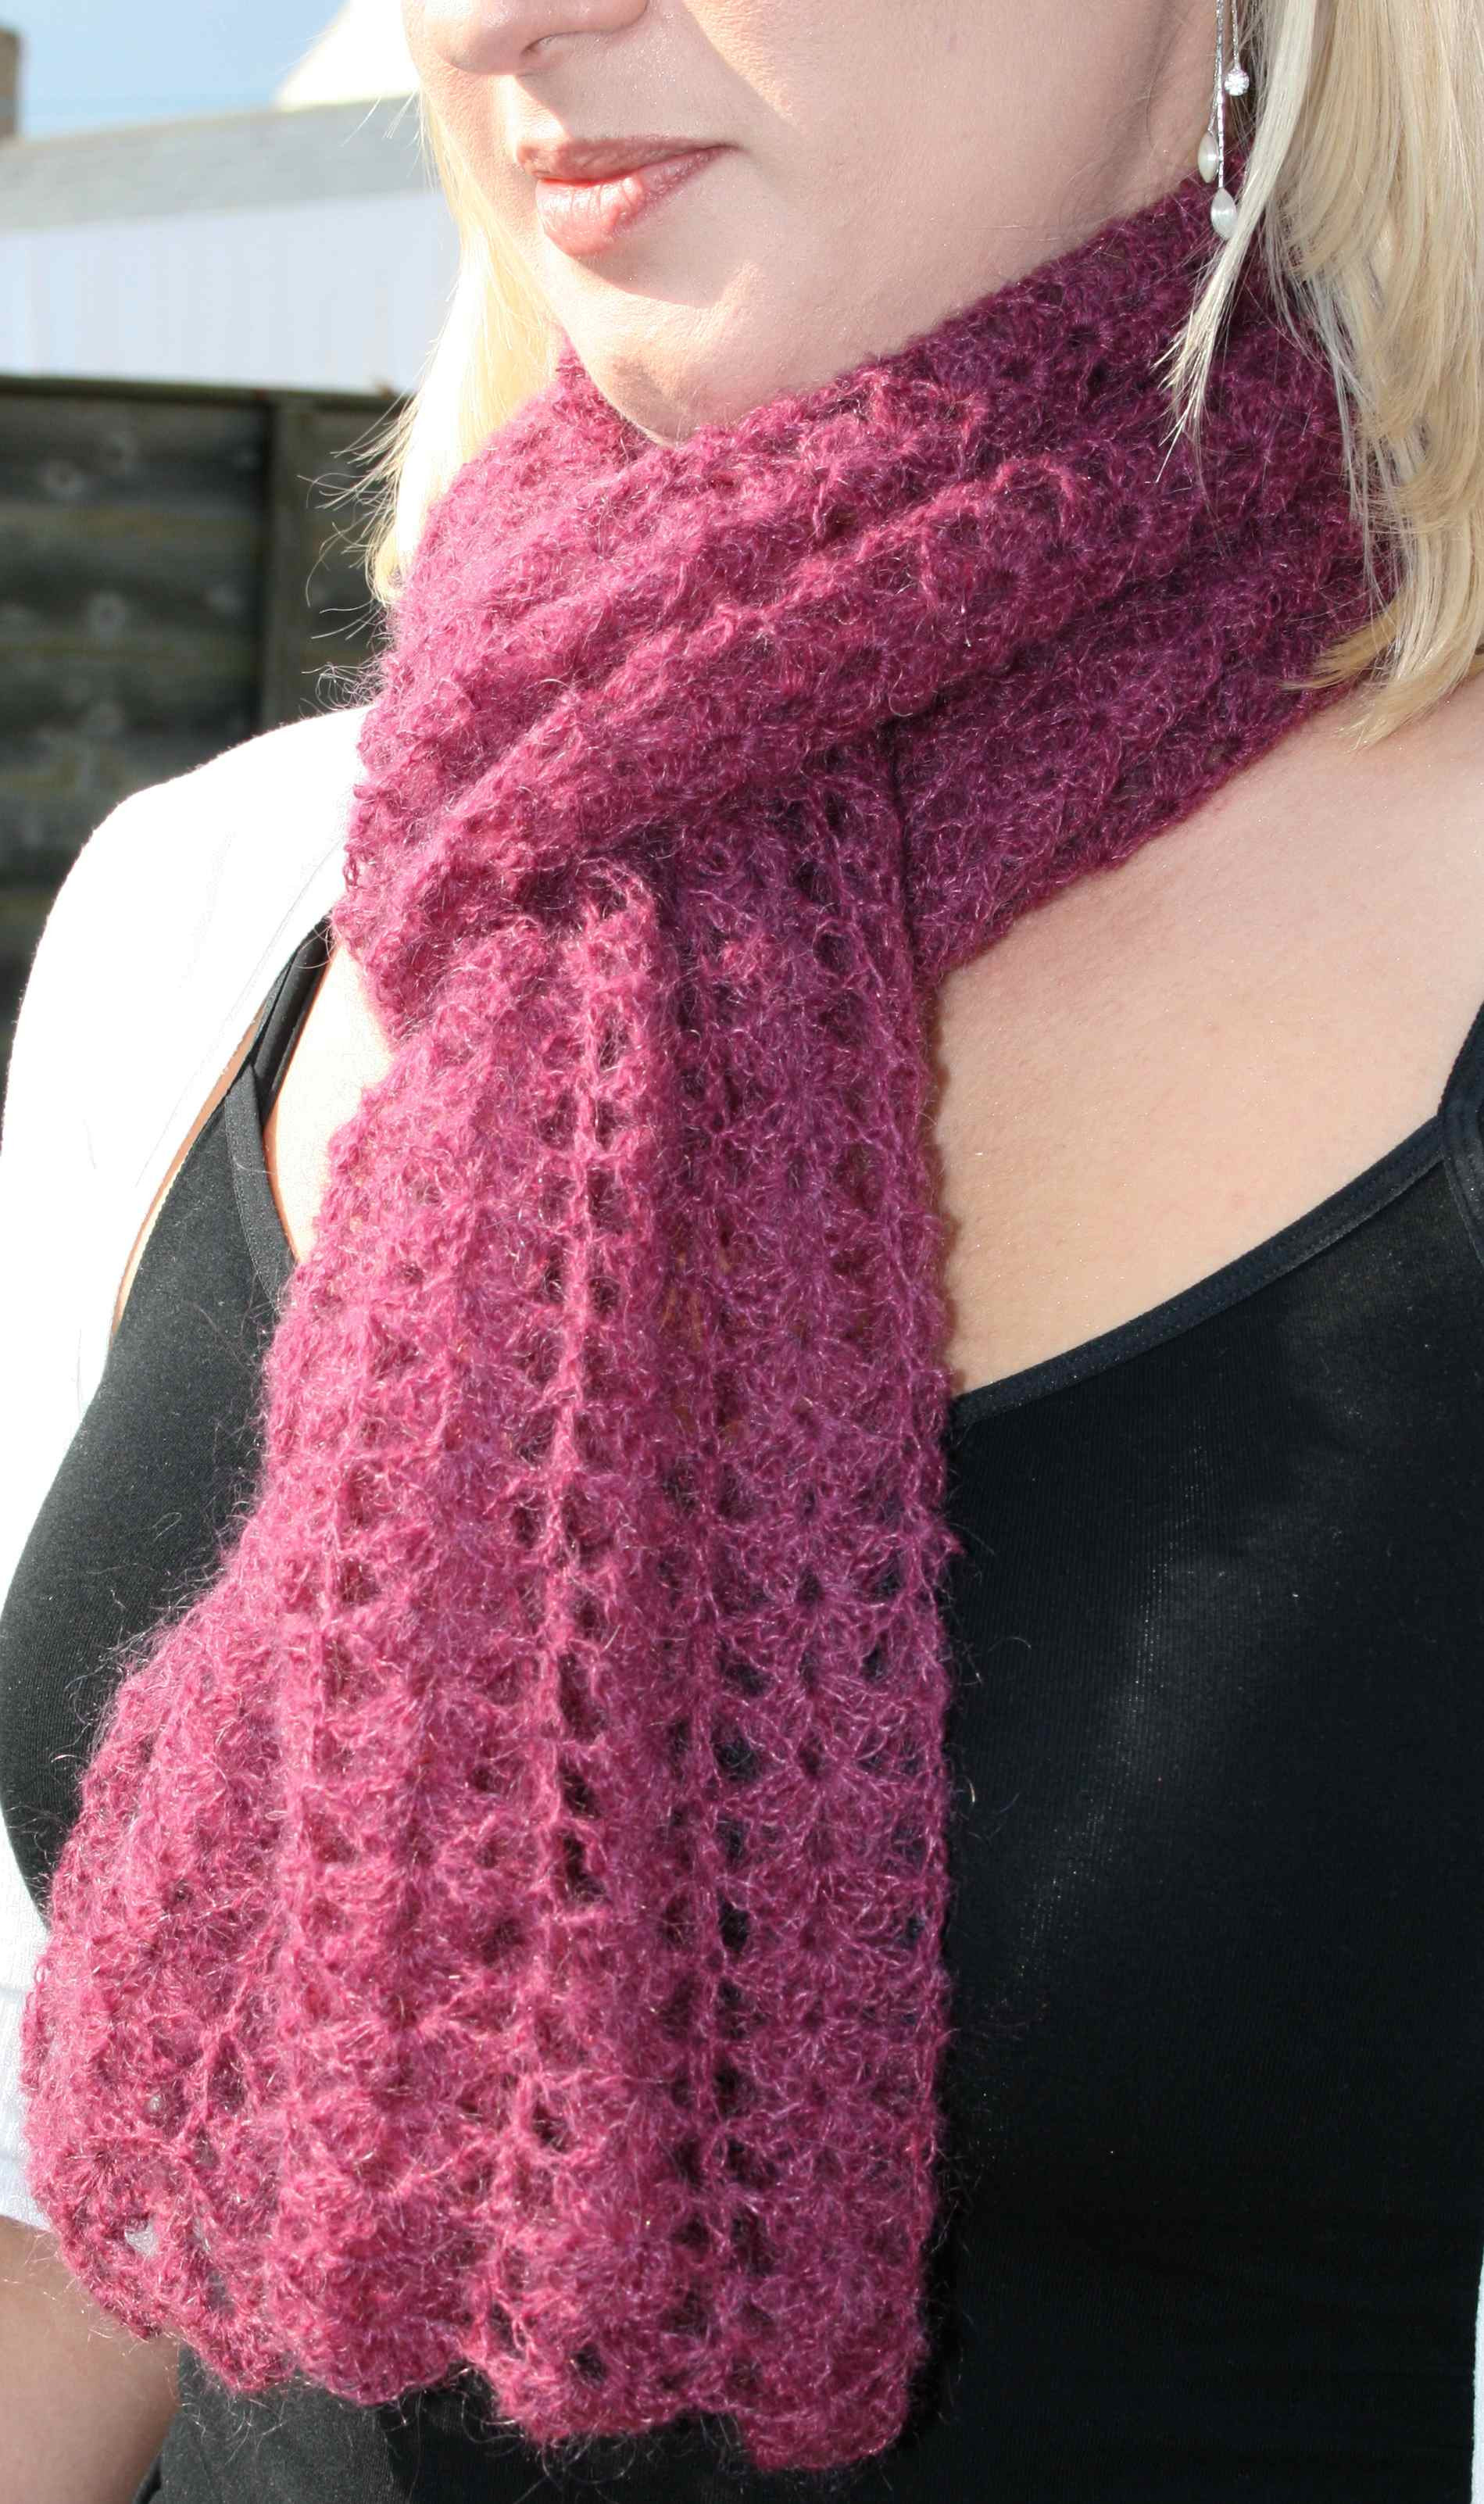 Lacy Crochet Scarf Lovely Crochet Boteh Scarf Pattern – Crochet Patterns Of Perfect 44 Ideas Lacy Crochet Scarf